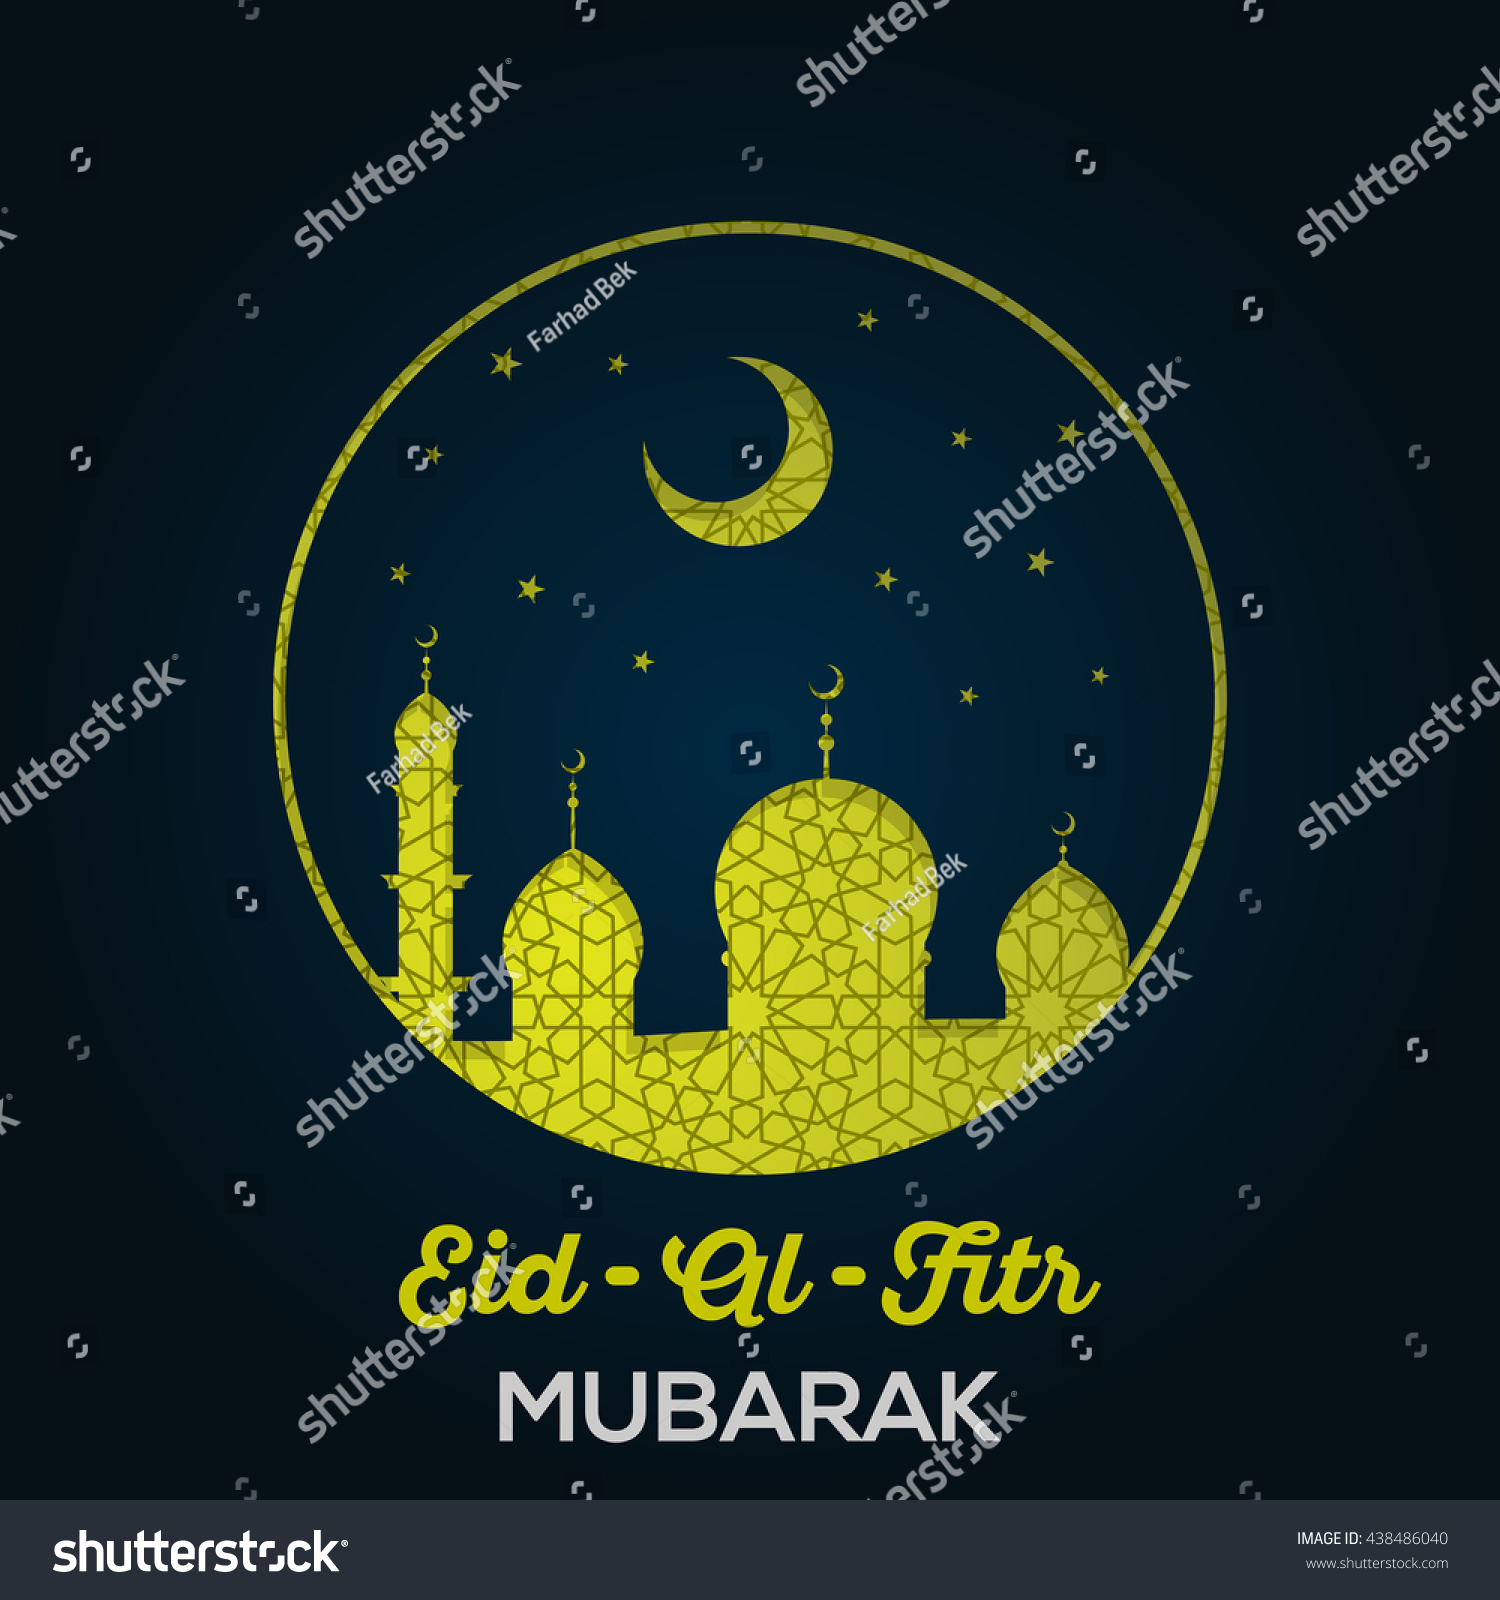 Eid al fitr mubarak greeting card stock vector hd royalty free eid al fitr mubarak greeting card or banner with mosques stars moon and m4hsunfo